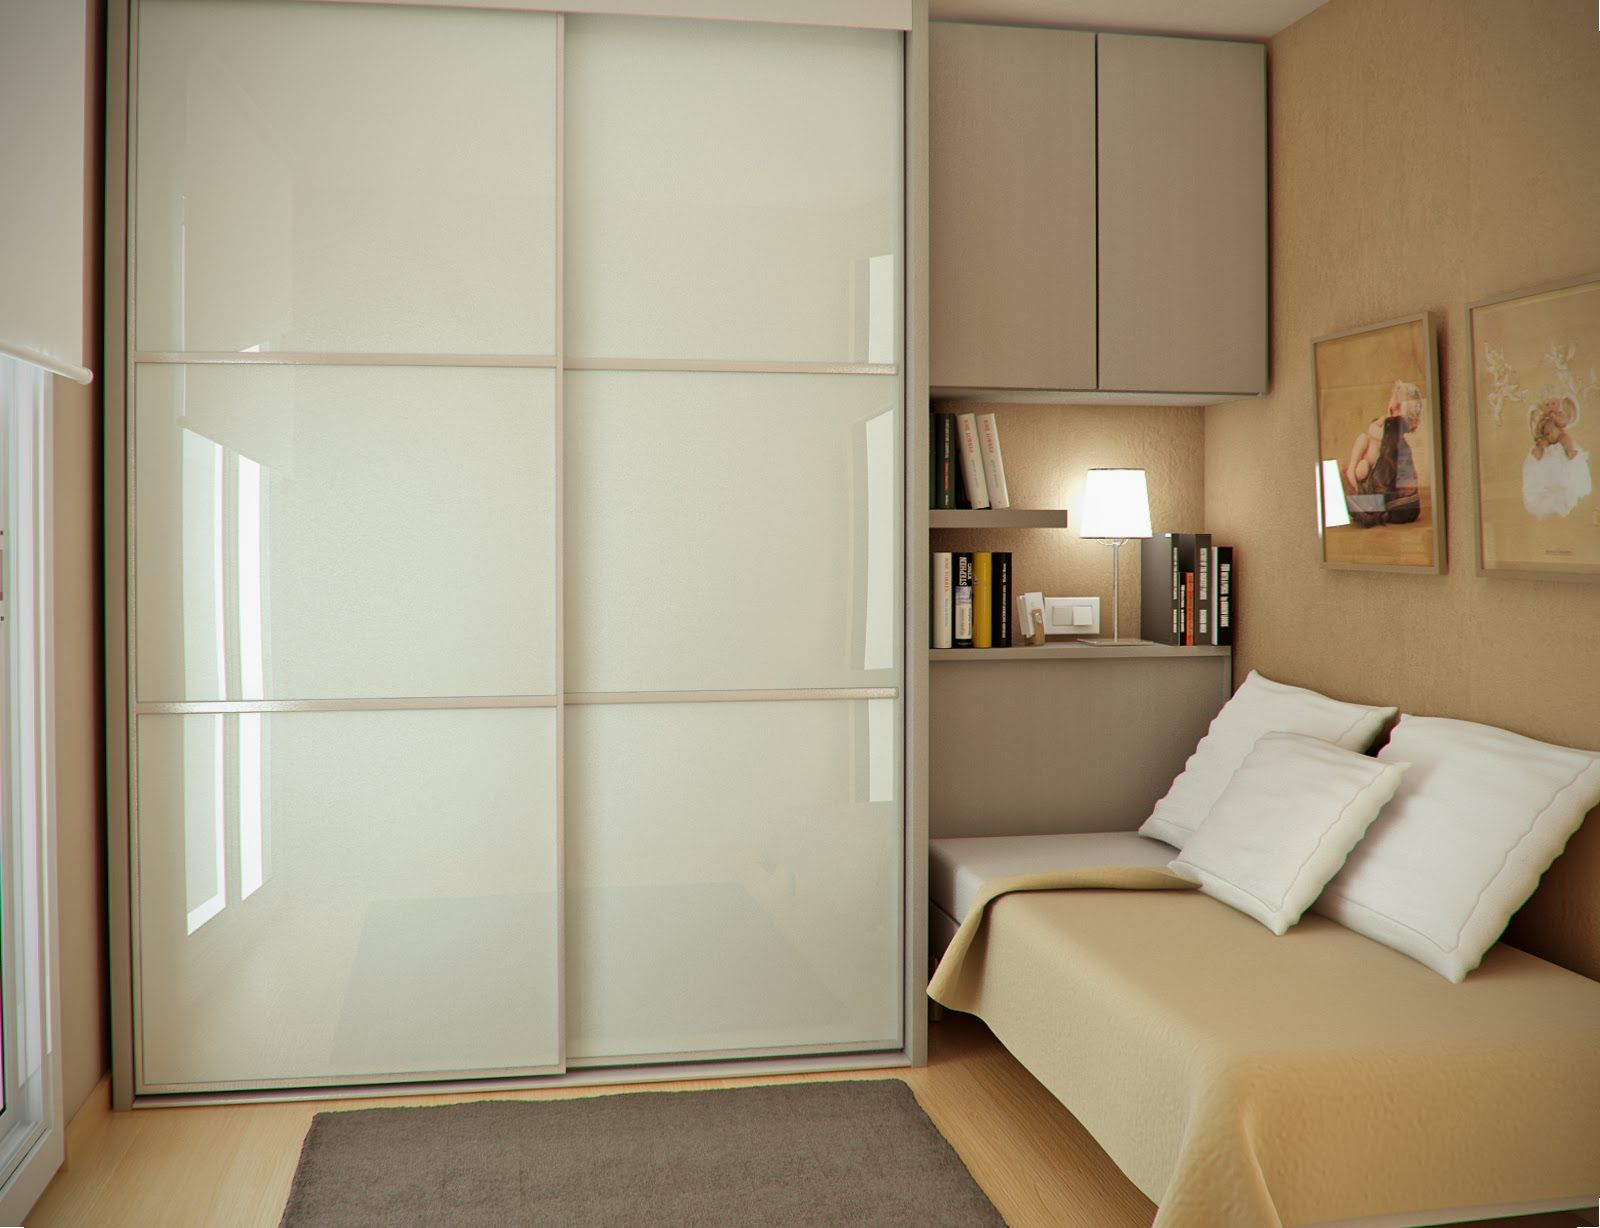 Small Bedroom Wardrobe Solutions 30 Space Saving Beds For Small Rooms Fitted Wardrobes Modern